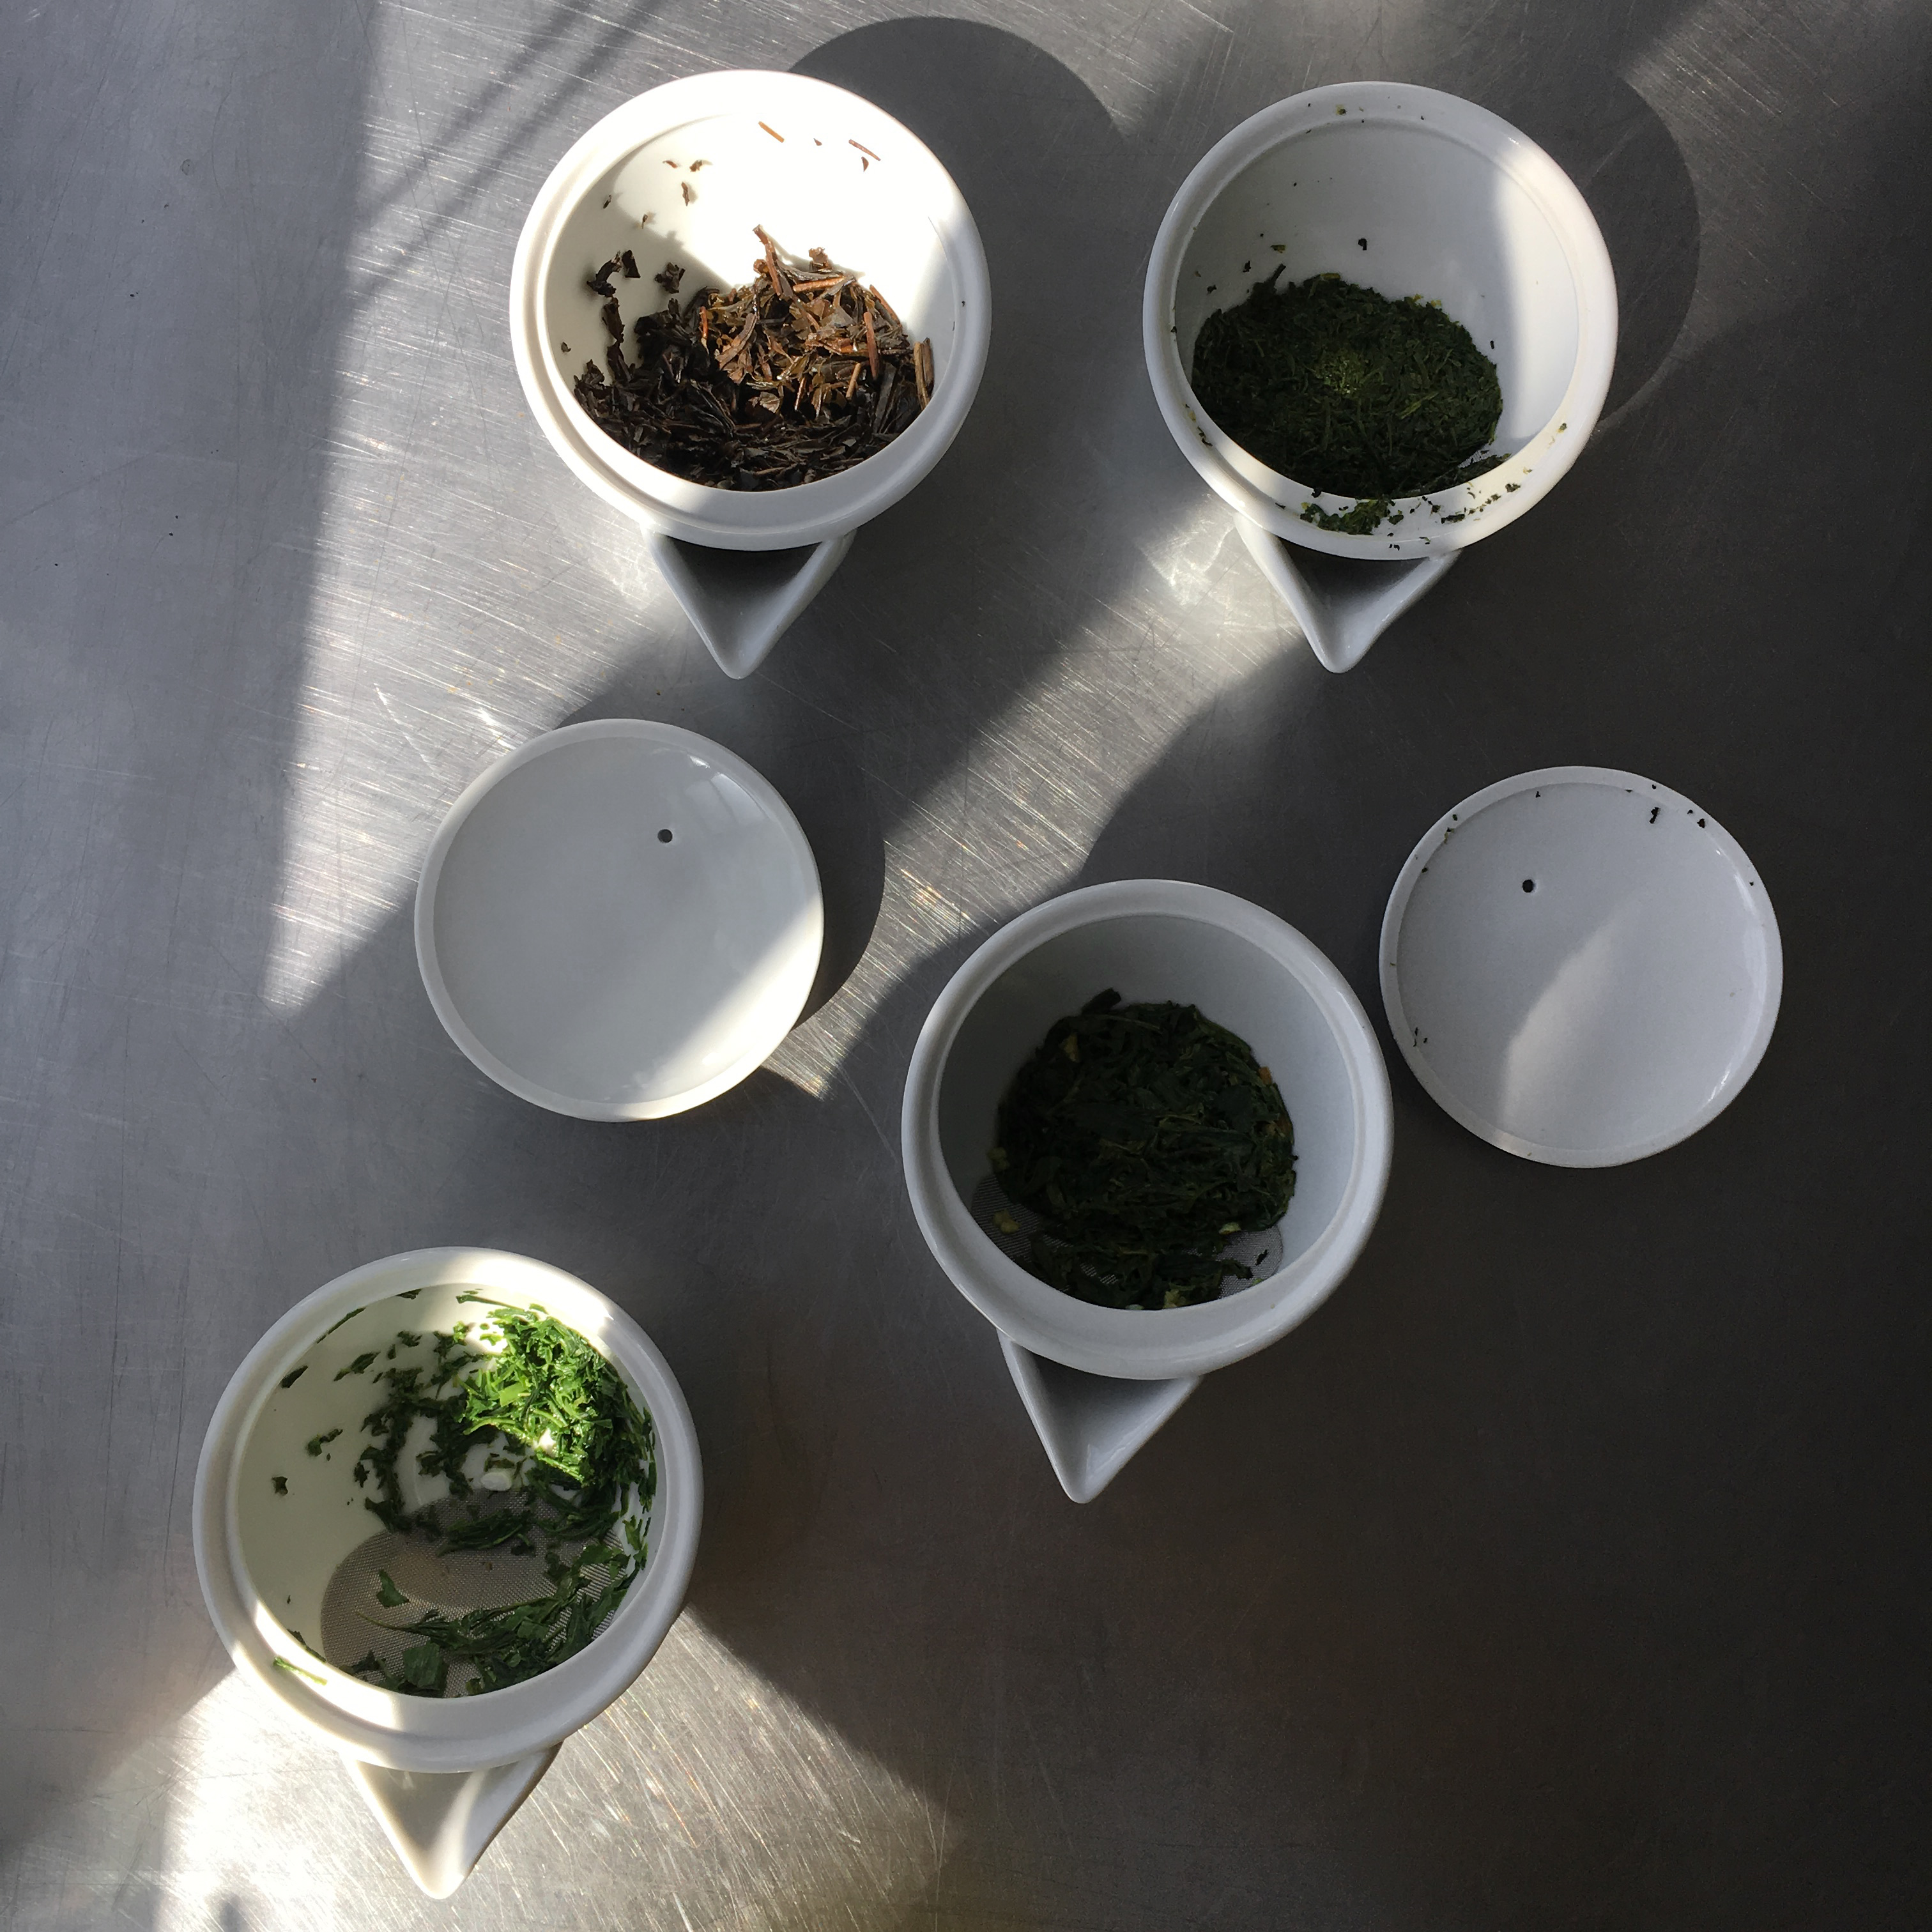 japanese green tea leaves after test kitchen tasting